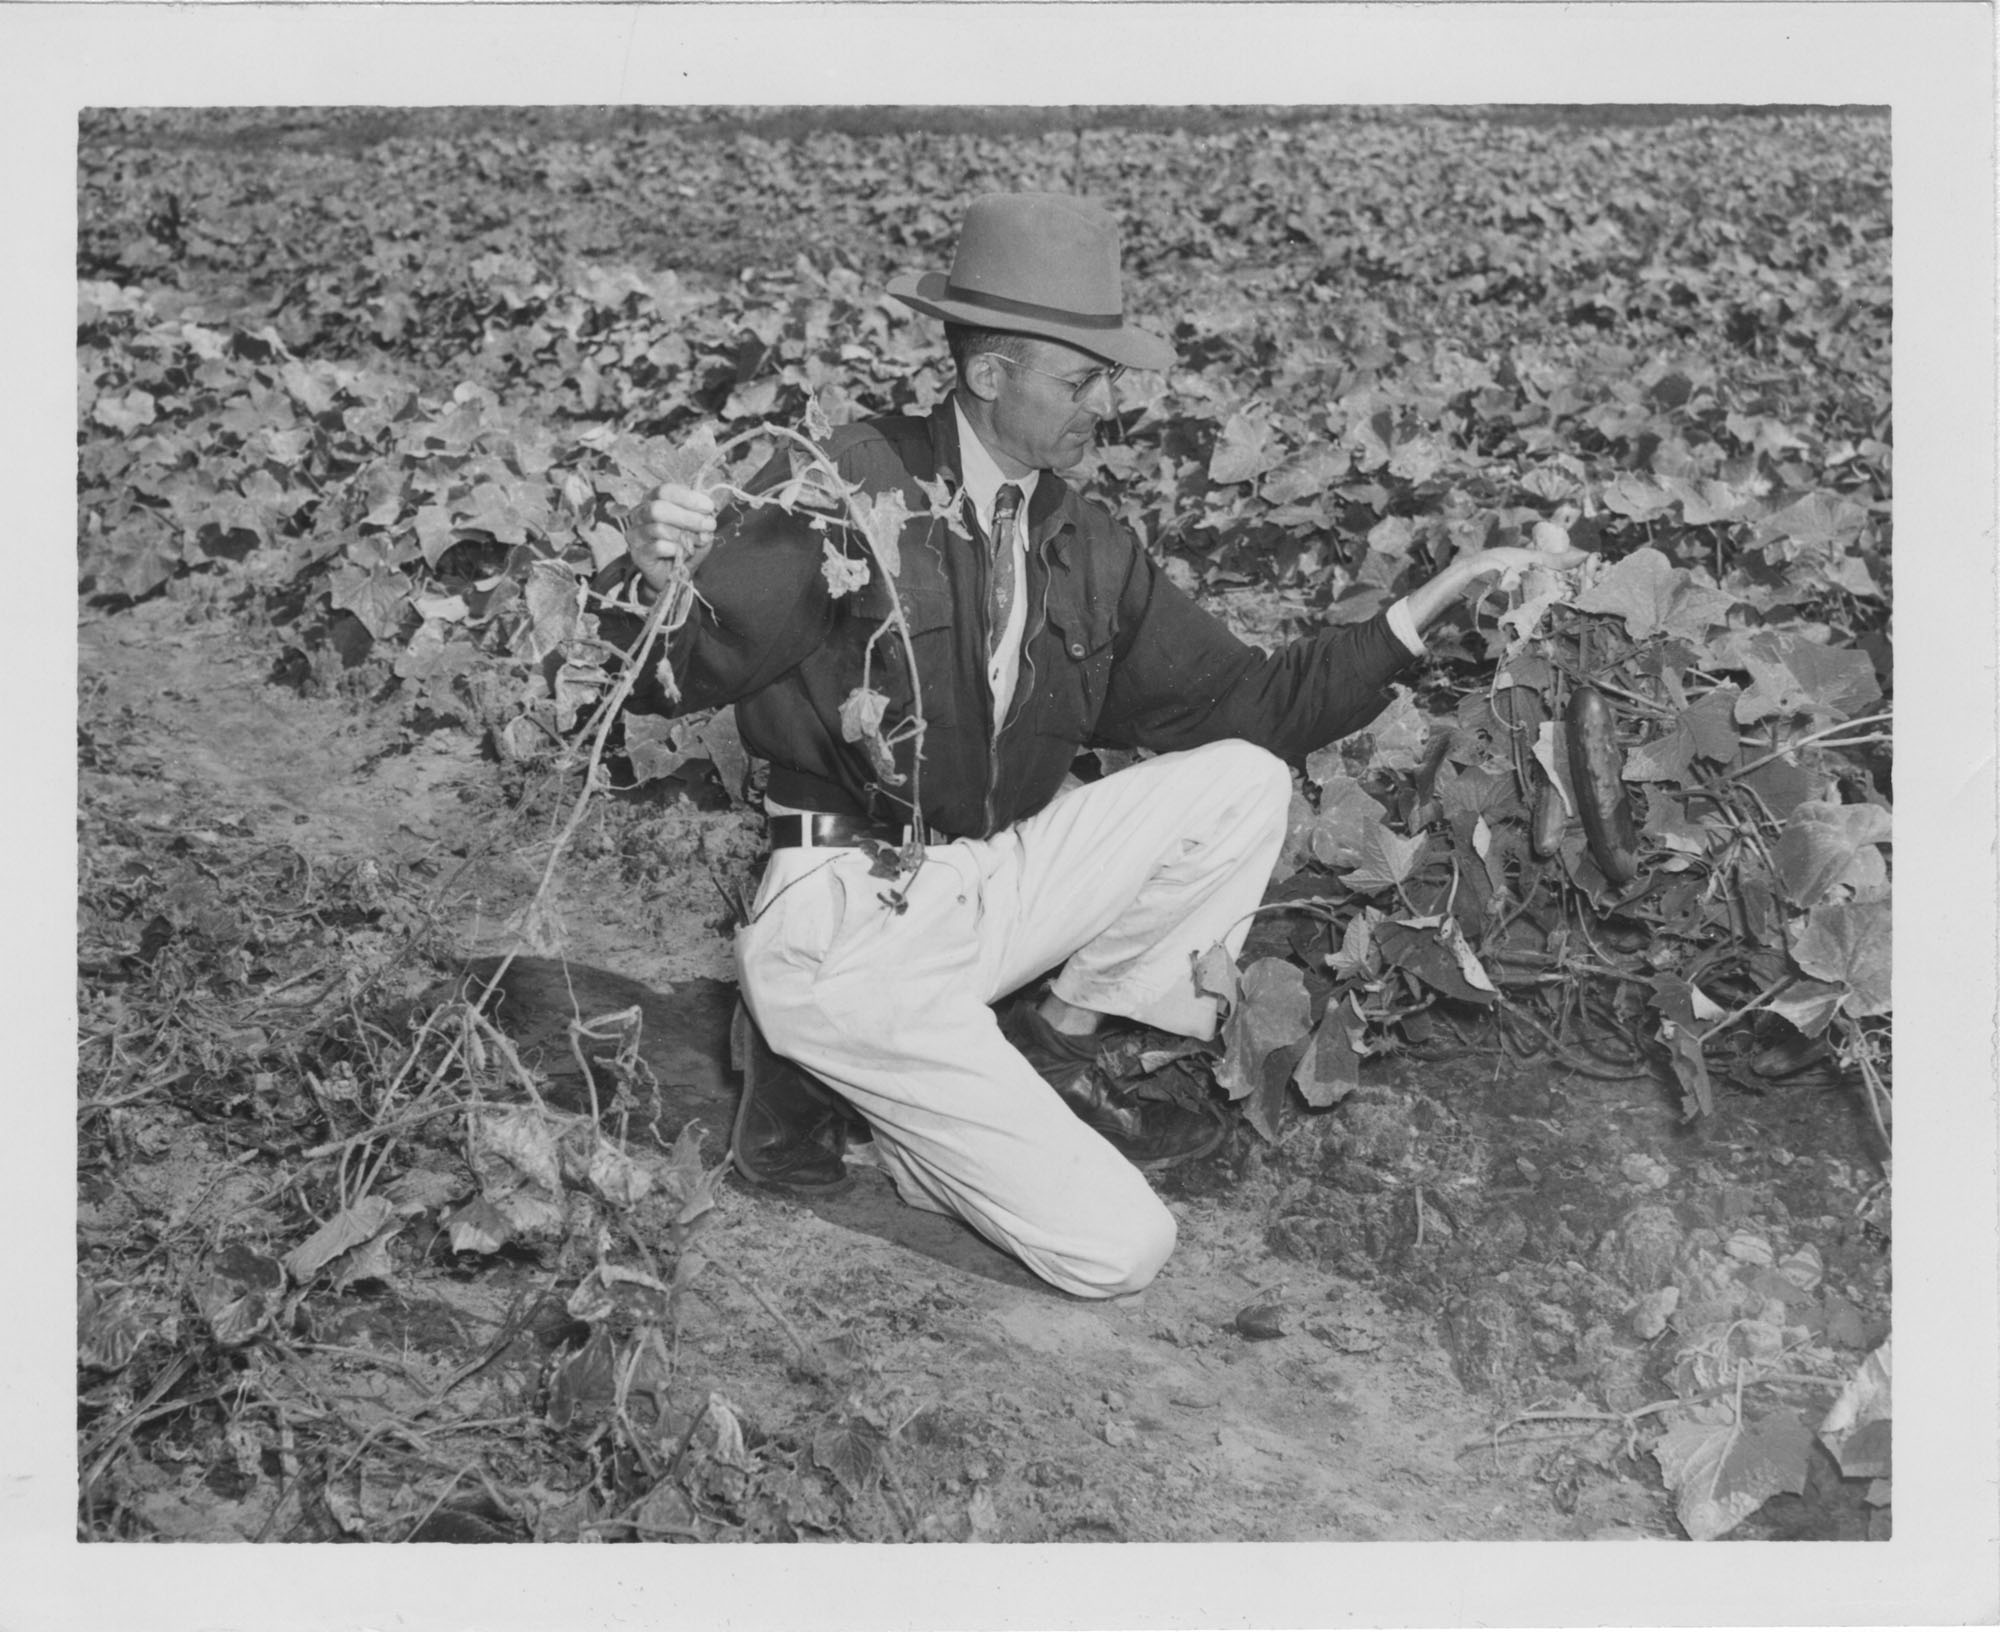 Black and white photograph of a man in a cucumber field holding up vines and cucumbers